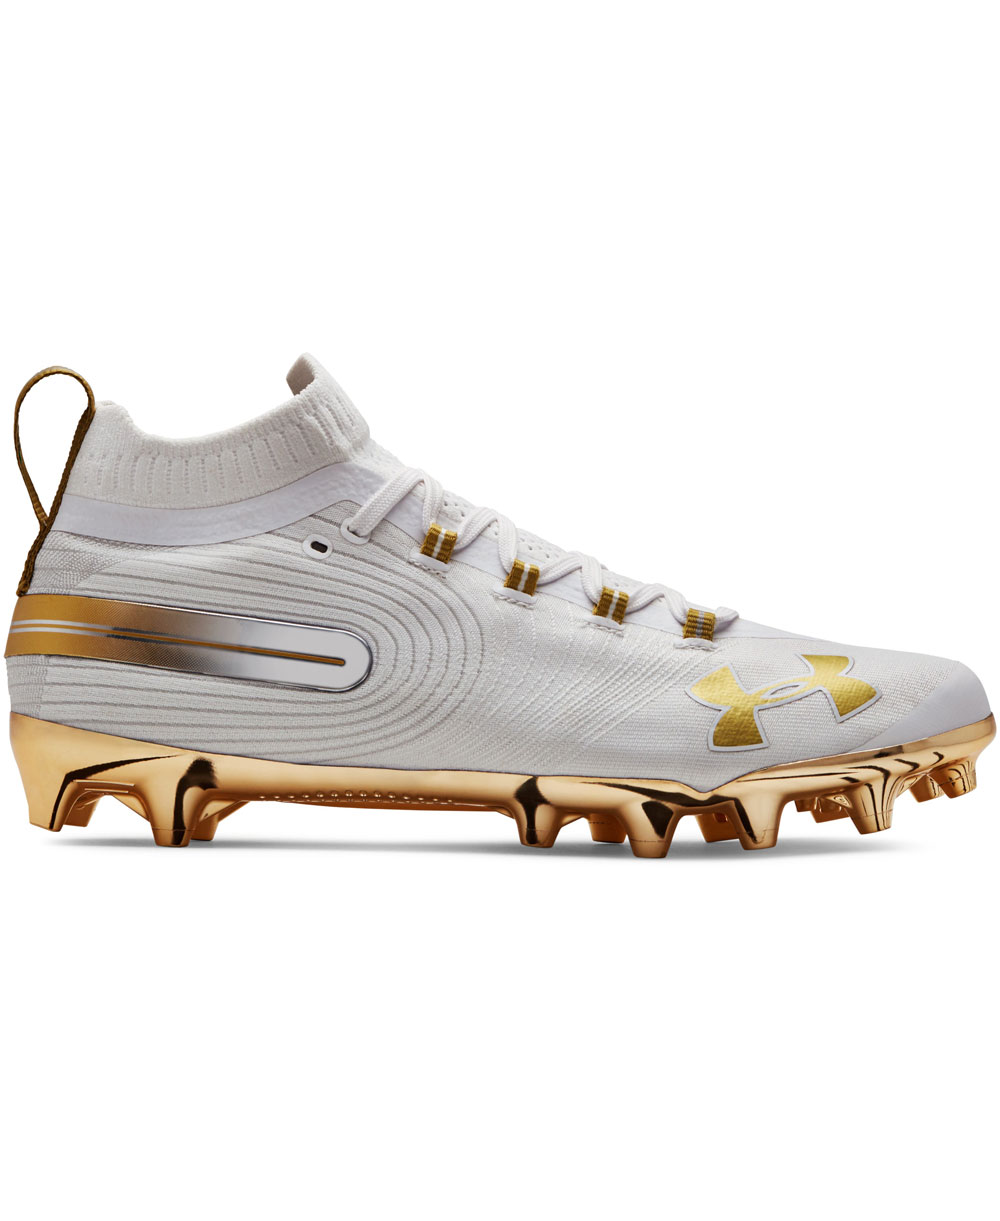 b5bfe8dcd93 Under Armour Men s Spotlight MC American Football Cleats White Gold